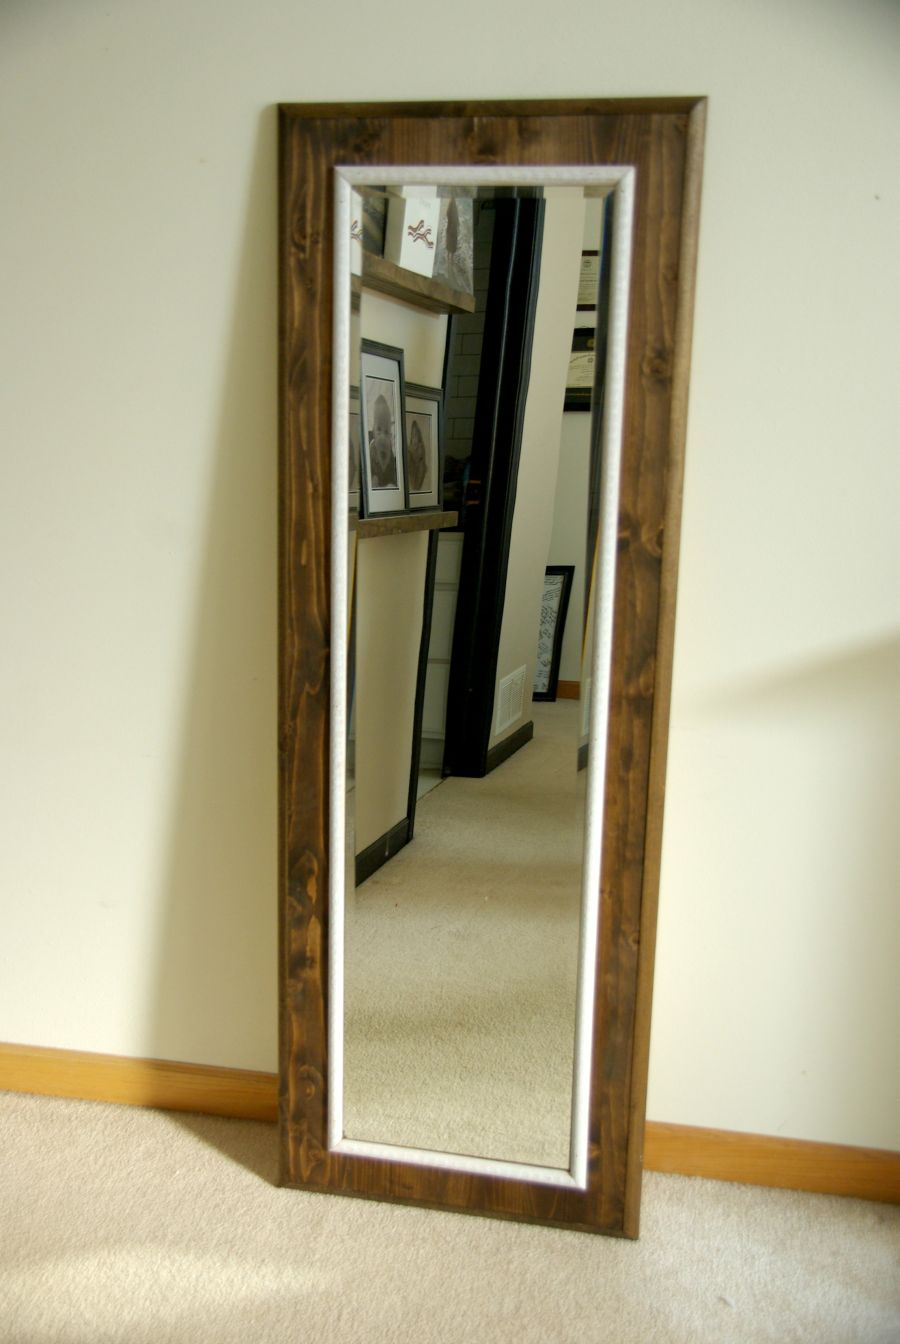 creativity length large wall full floor mirror dressing leaning ornate antique divine most huge